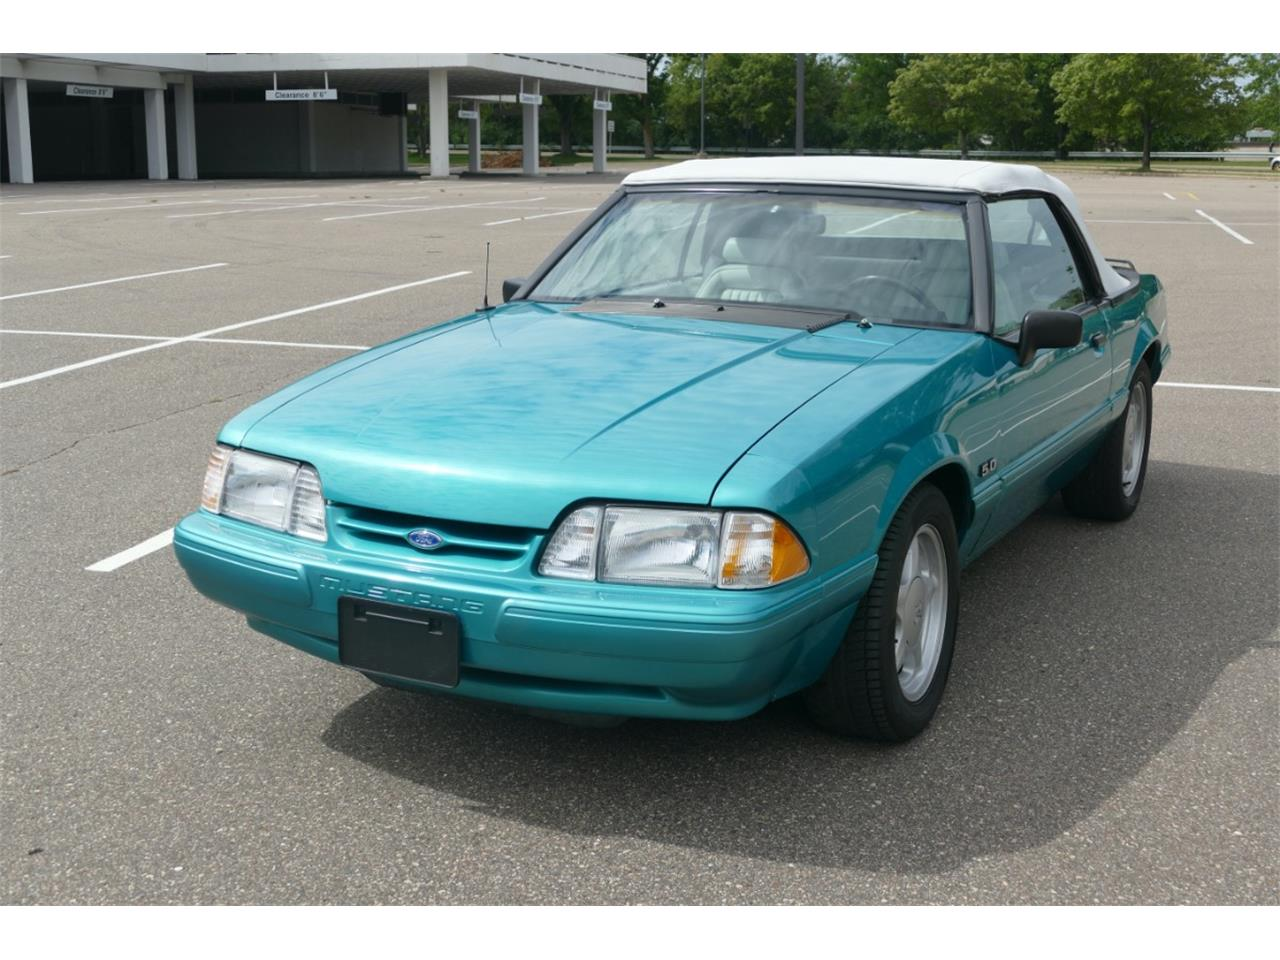 1992 Ford Mustang (CC-1412643) for sale in Edina, Minnesota